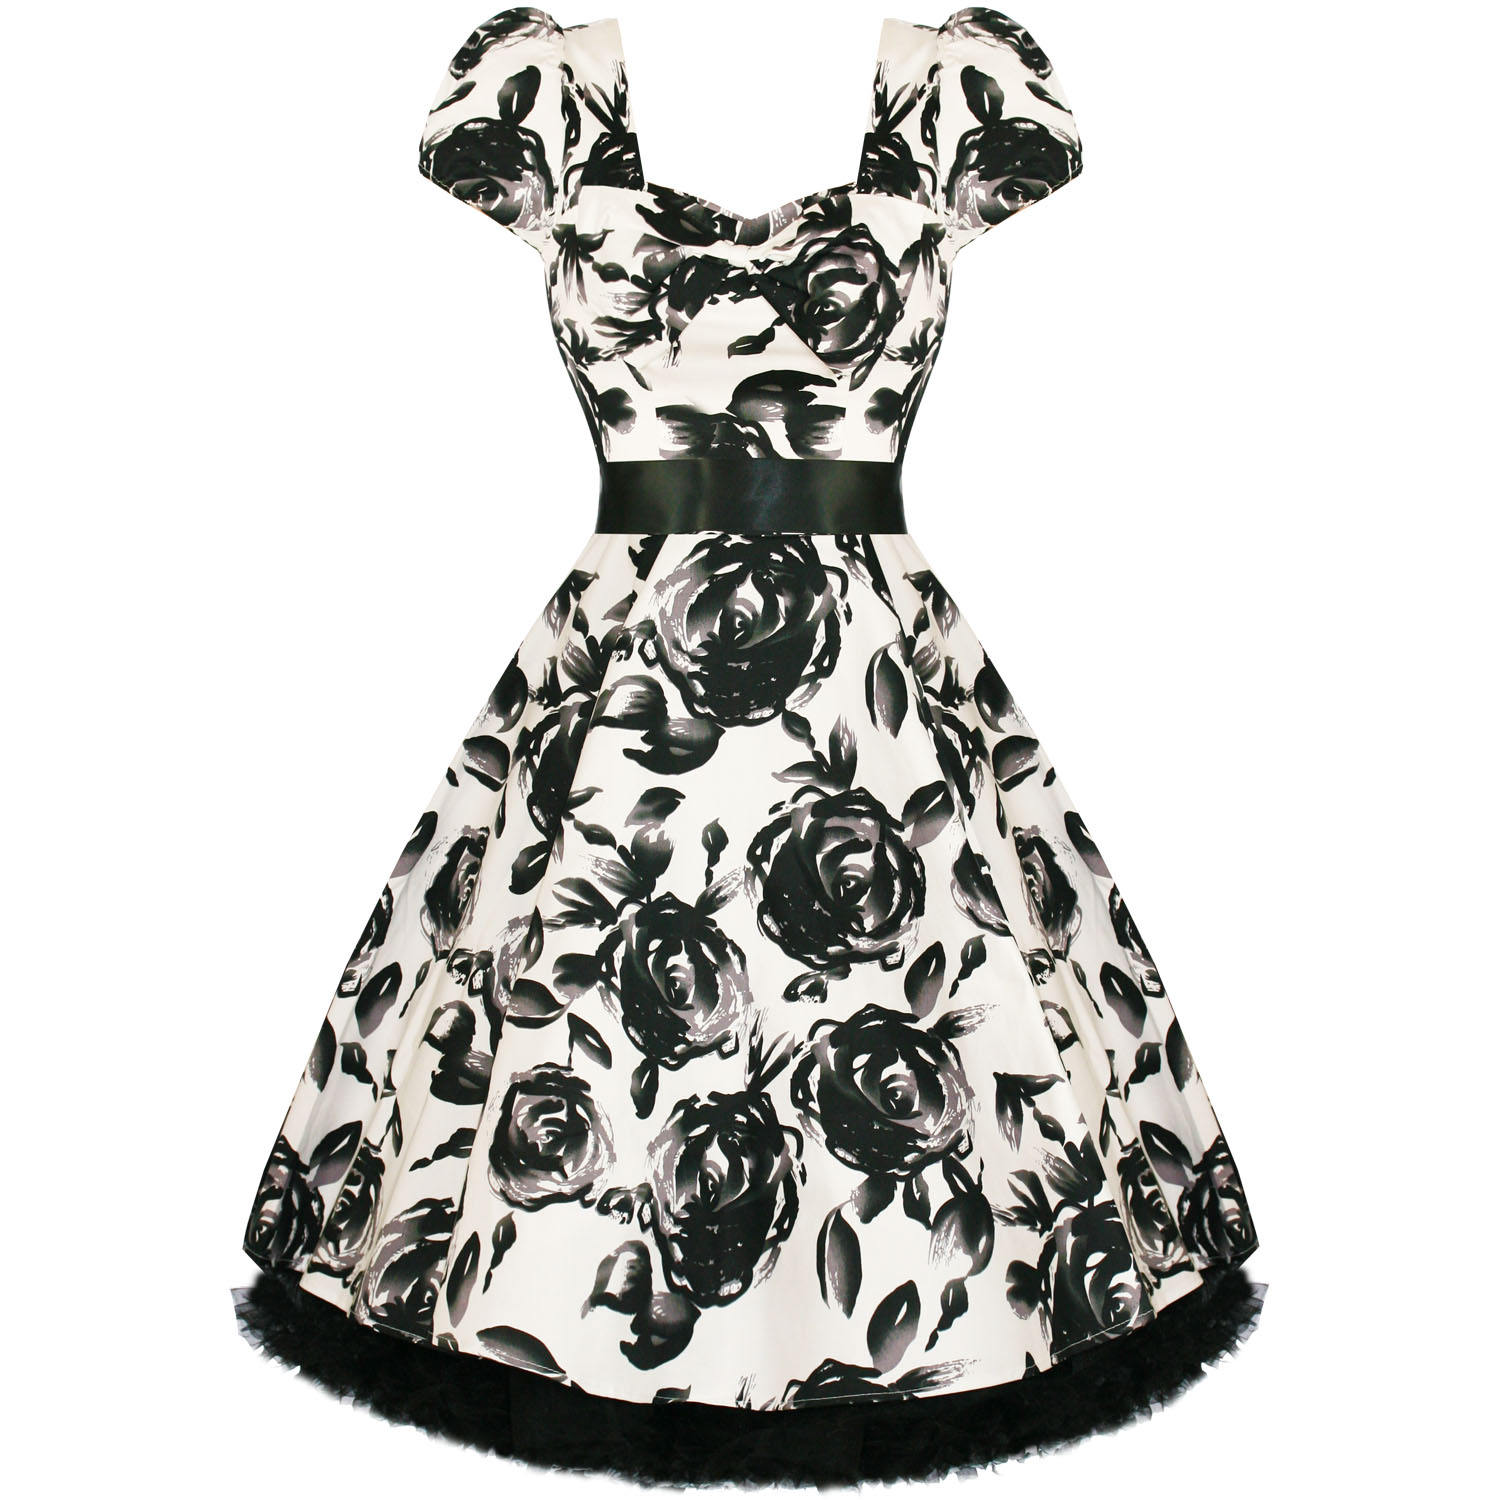 NEW-LADIES-WHITE-FLORAL-RETRO-VINTAGE-50S-STYLE-SWING-PARTY-PROM-DRESS